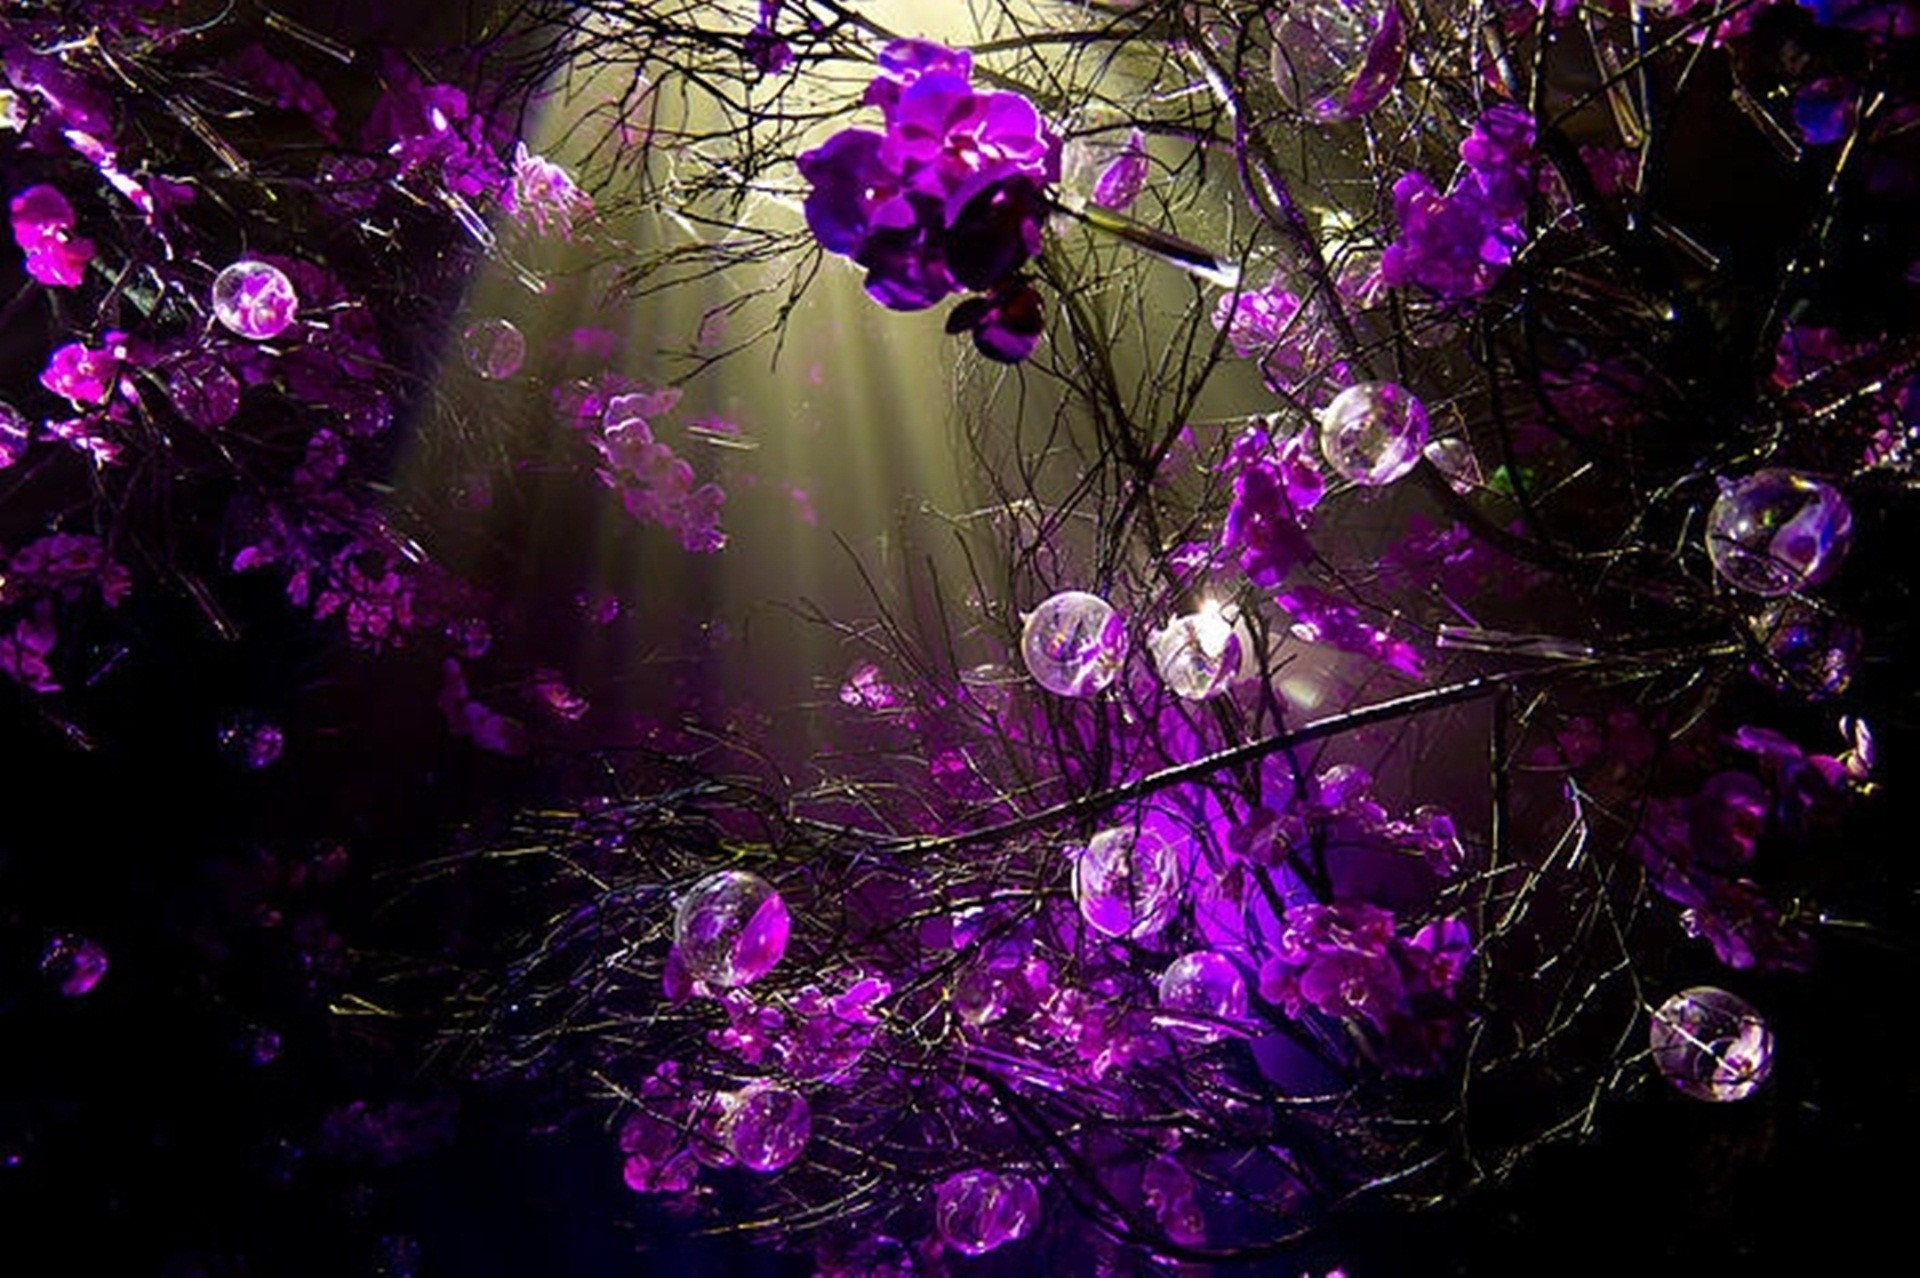 Purple Wallpapers 12 Best Wallpapers Collection Desktop: Purple Desktop Wallpaper (60+ Images